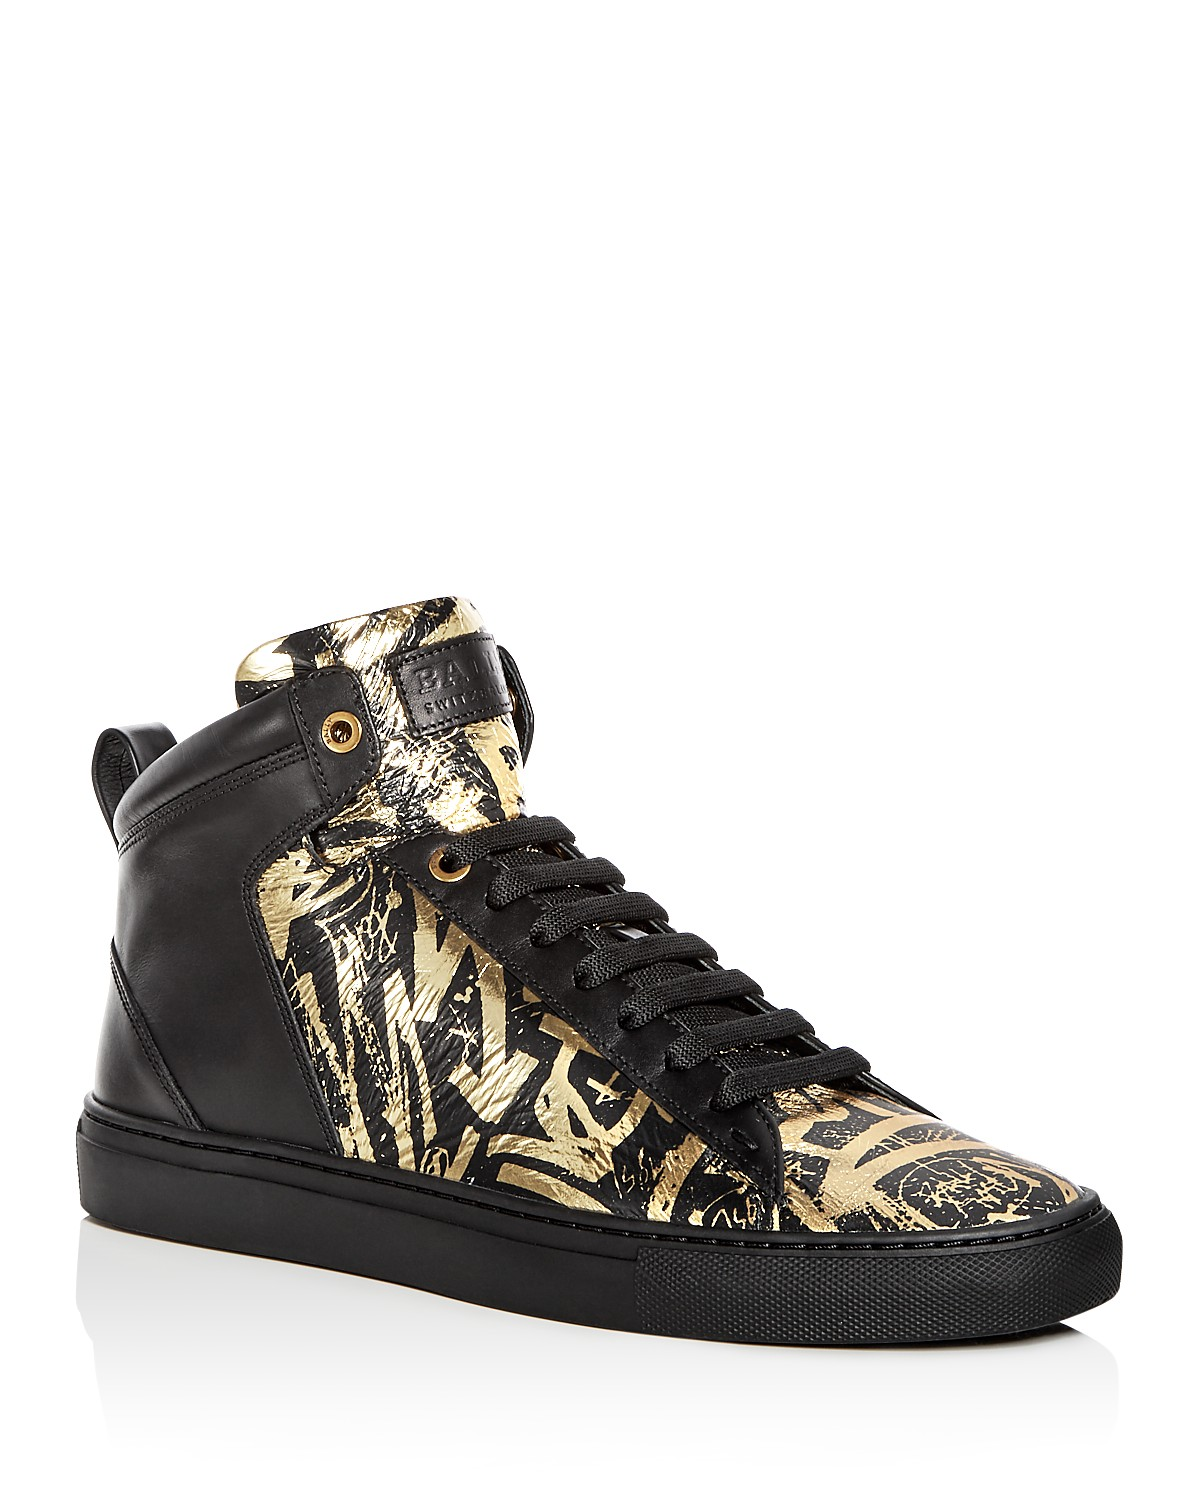 Bally Men's Hedo Leather High Top Sneakers 24AY4